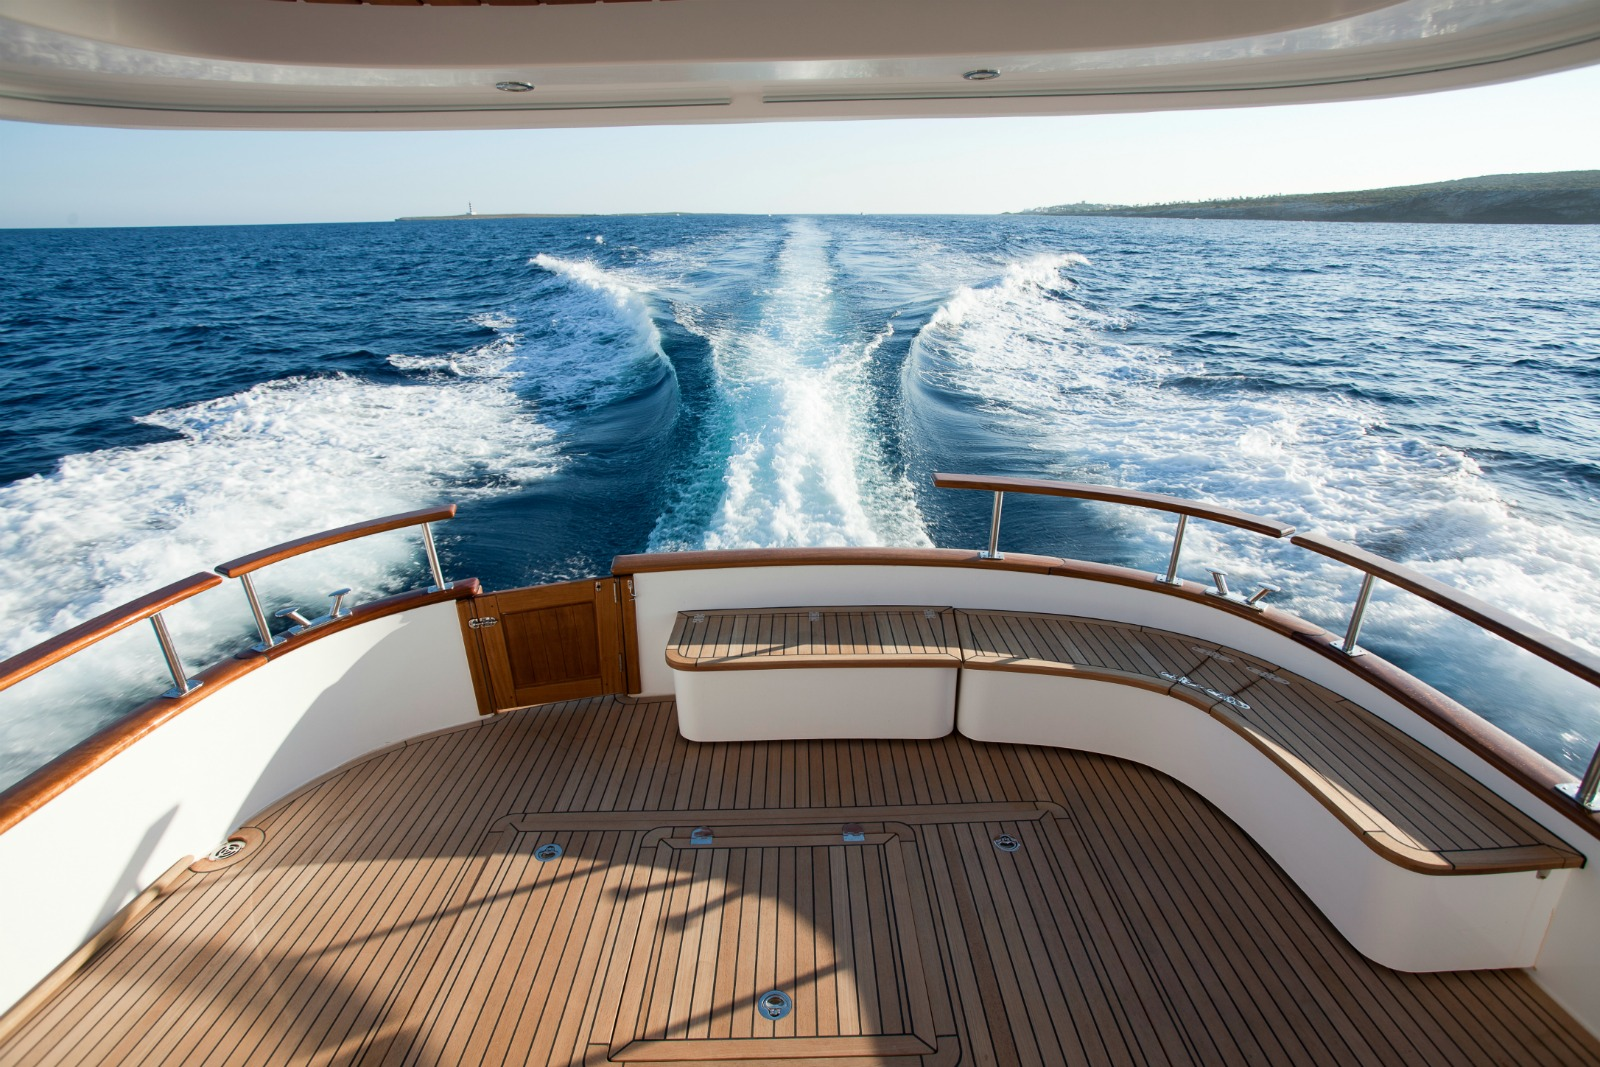 Sea trial the Minorca islander 42 flybridge